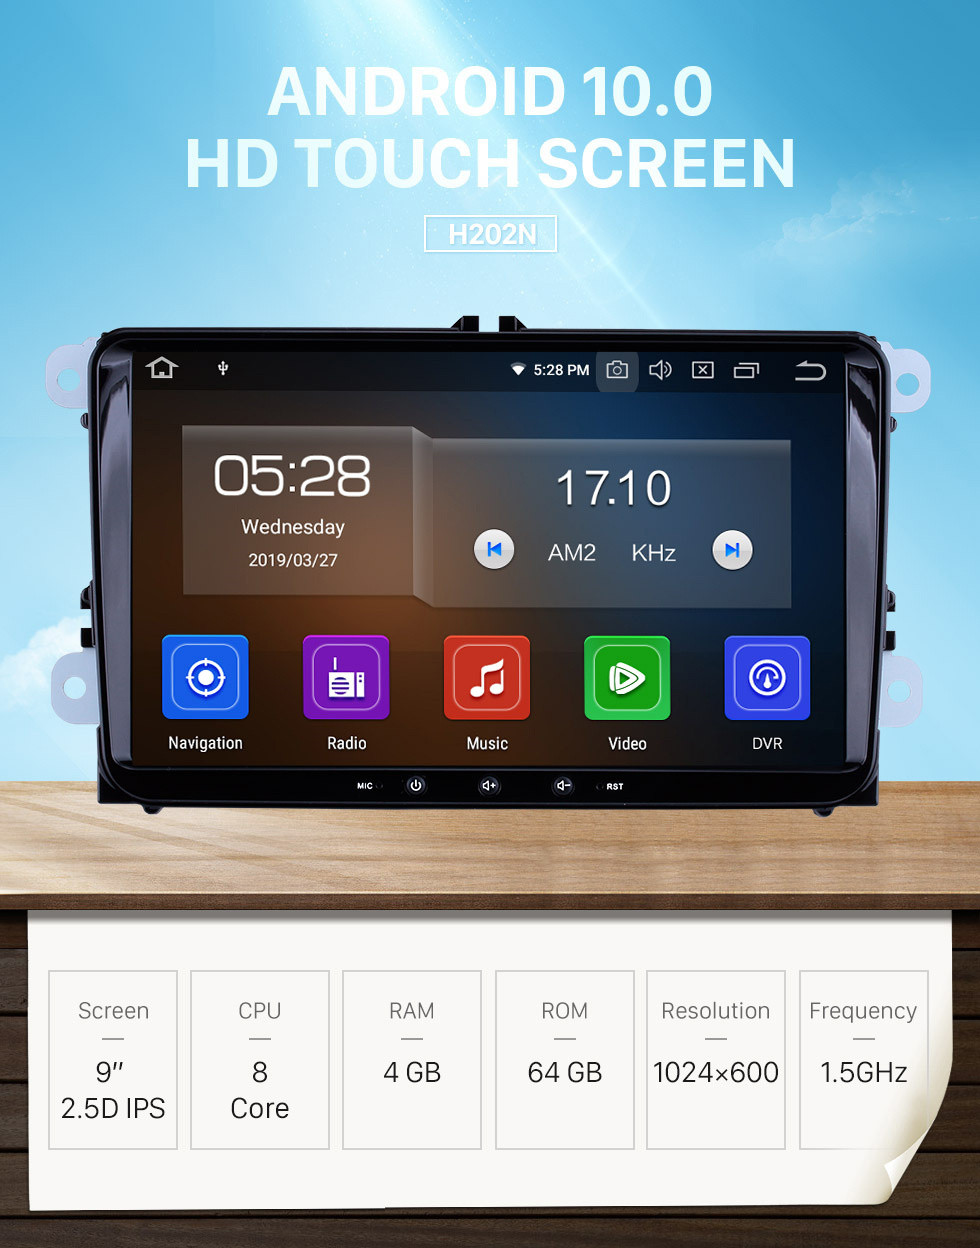 Seicane Aftermarket Android 10.0 GPS DVD Player Car Audio System for 2010-2013 Skoda Superb with Mirror Link OBD2 DVR 3G WiFi Radio Backup Camera HD touch Screen Bluetooth